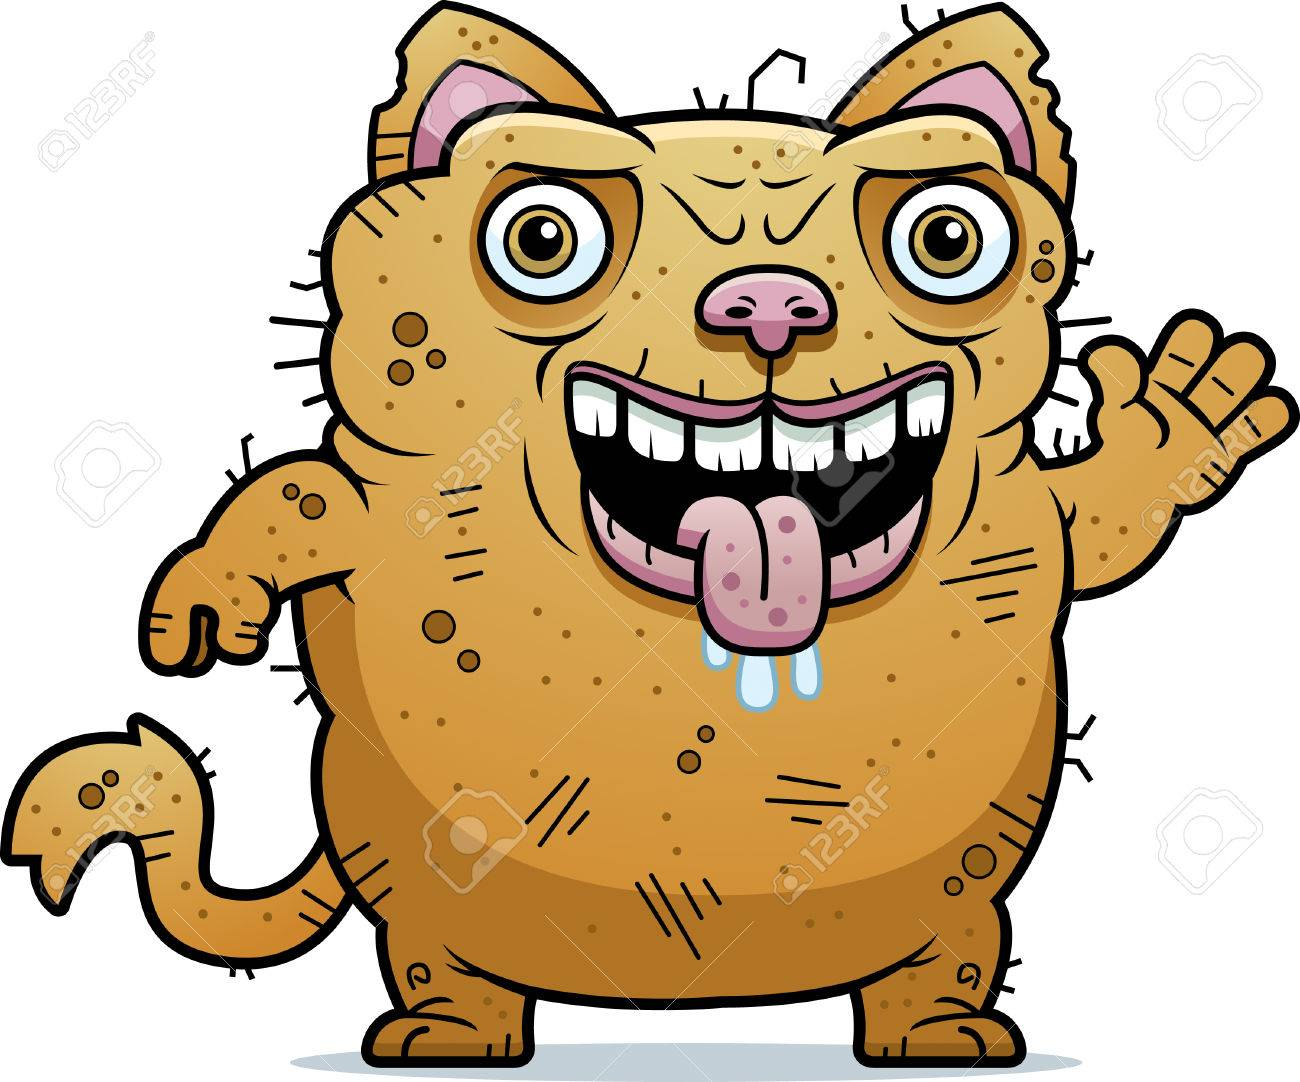 A Cartoon Illustration Of An Ugly Cat Waving Royalty Free Cliparts Vectors And Stock Illustration Image 42751449